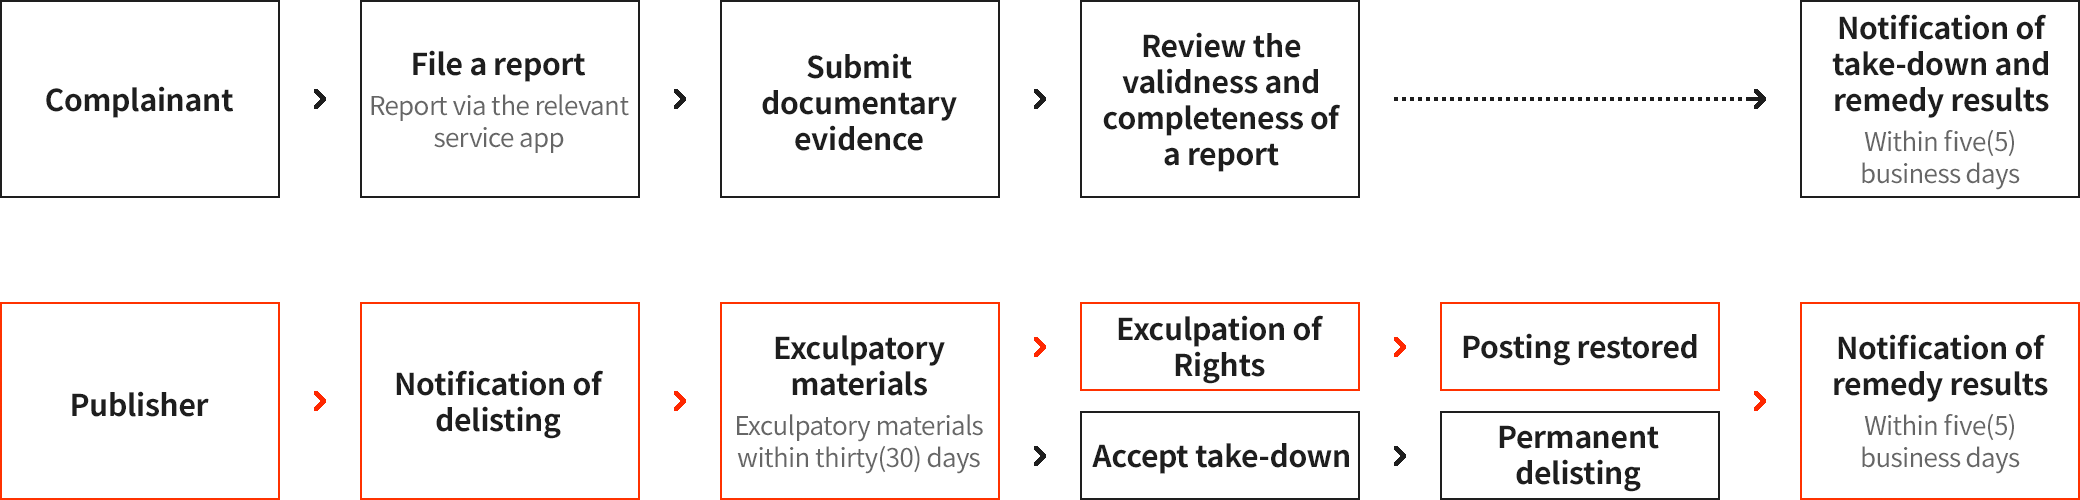 The Complainant must present documentary evidence after filing a report on the relevant service app and shall be notified of post-delisting. The remedy results thereof after review of validness and completeness of the report. The Publisher must request vindication within thirty (30) days after receipt of post-delisting. With rights vindicated, the posting mentioned above shall be listed again. If failed, the posting shall be removed permanently, and the remedy results thereof shall be notified to the relevant parties.